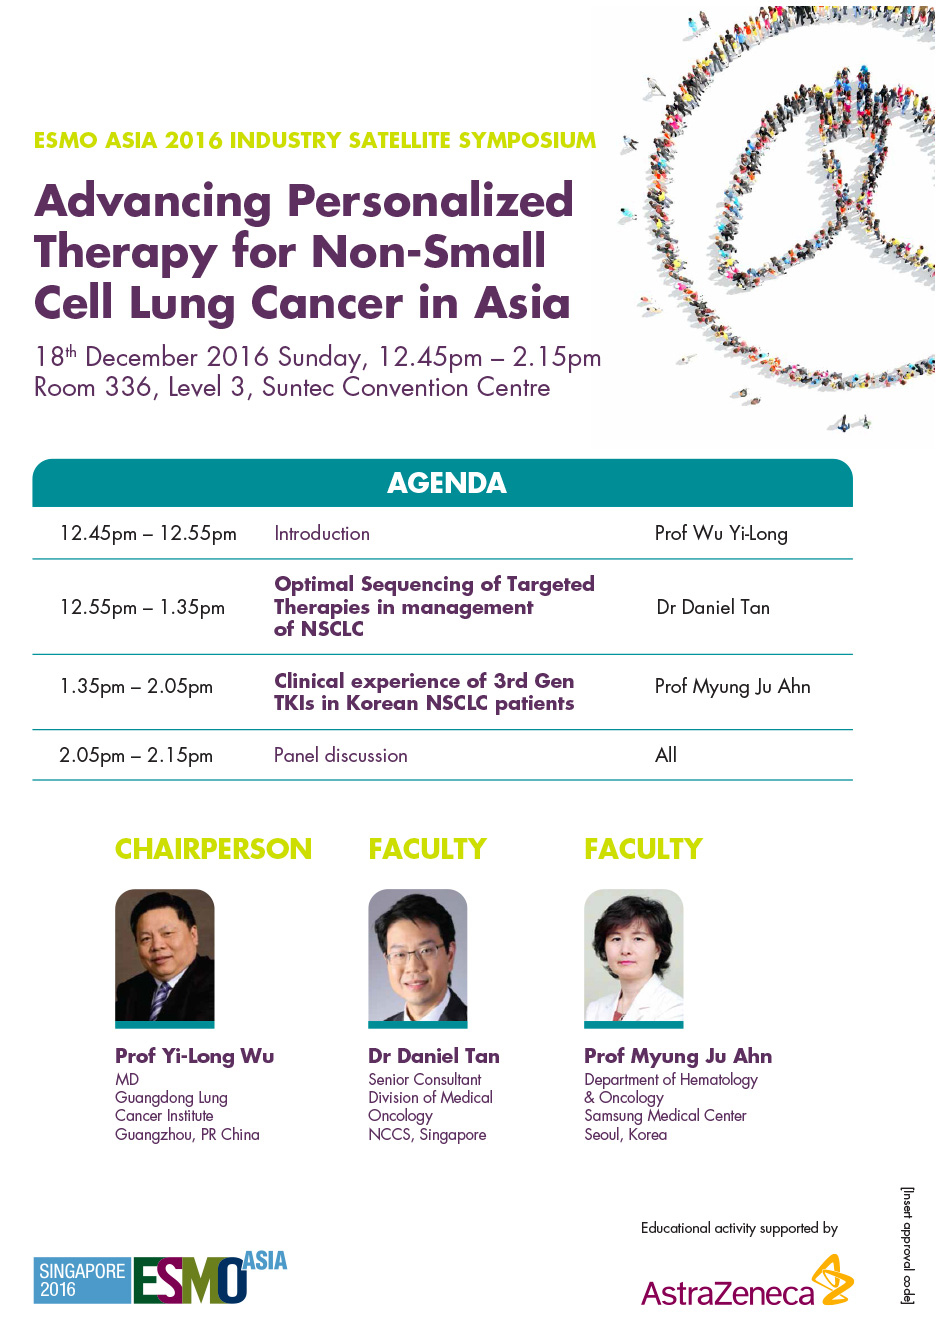 Advancing Personalized Therapy for Non-Small Cell Lung Cancer in Asia